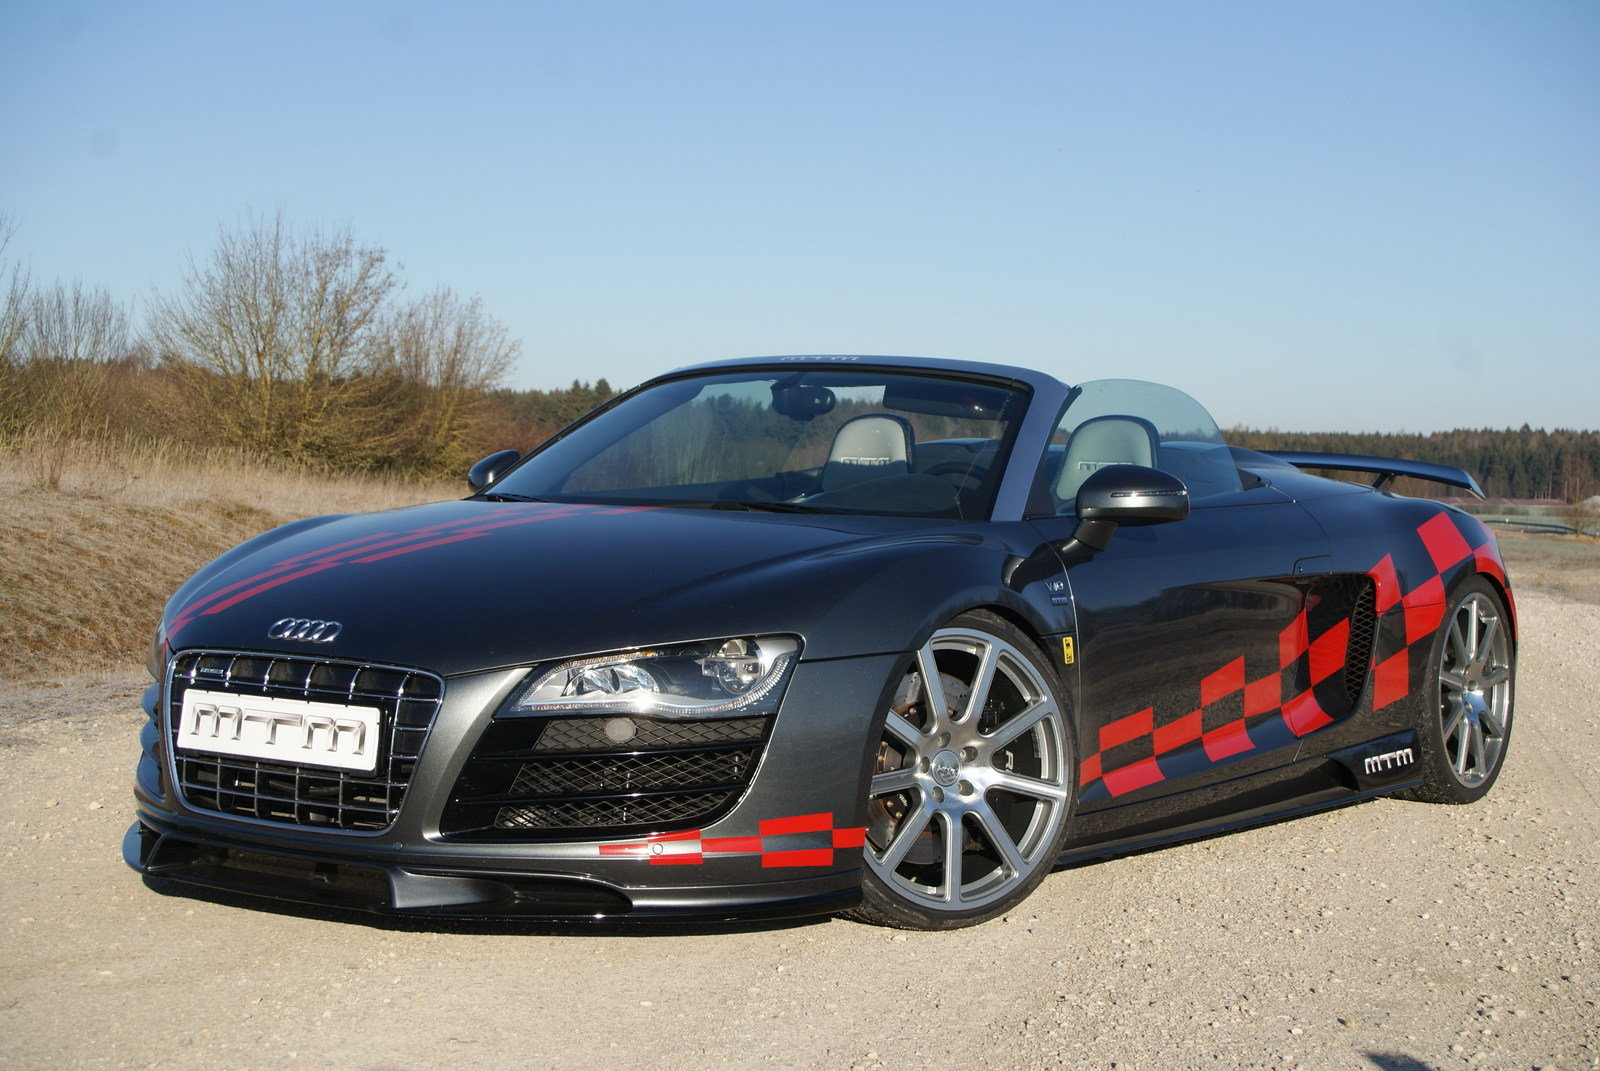 Sports Car Wallpaper For S8 2013 Audi R8 V10 Quattro By Mtm Top Speed